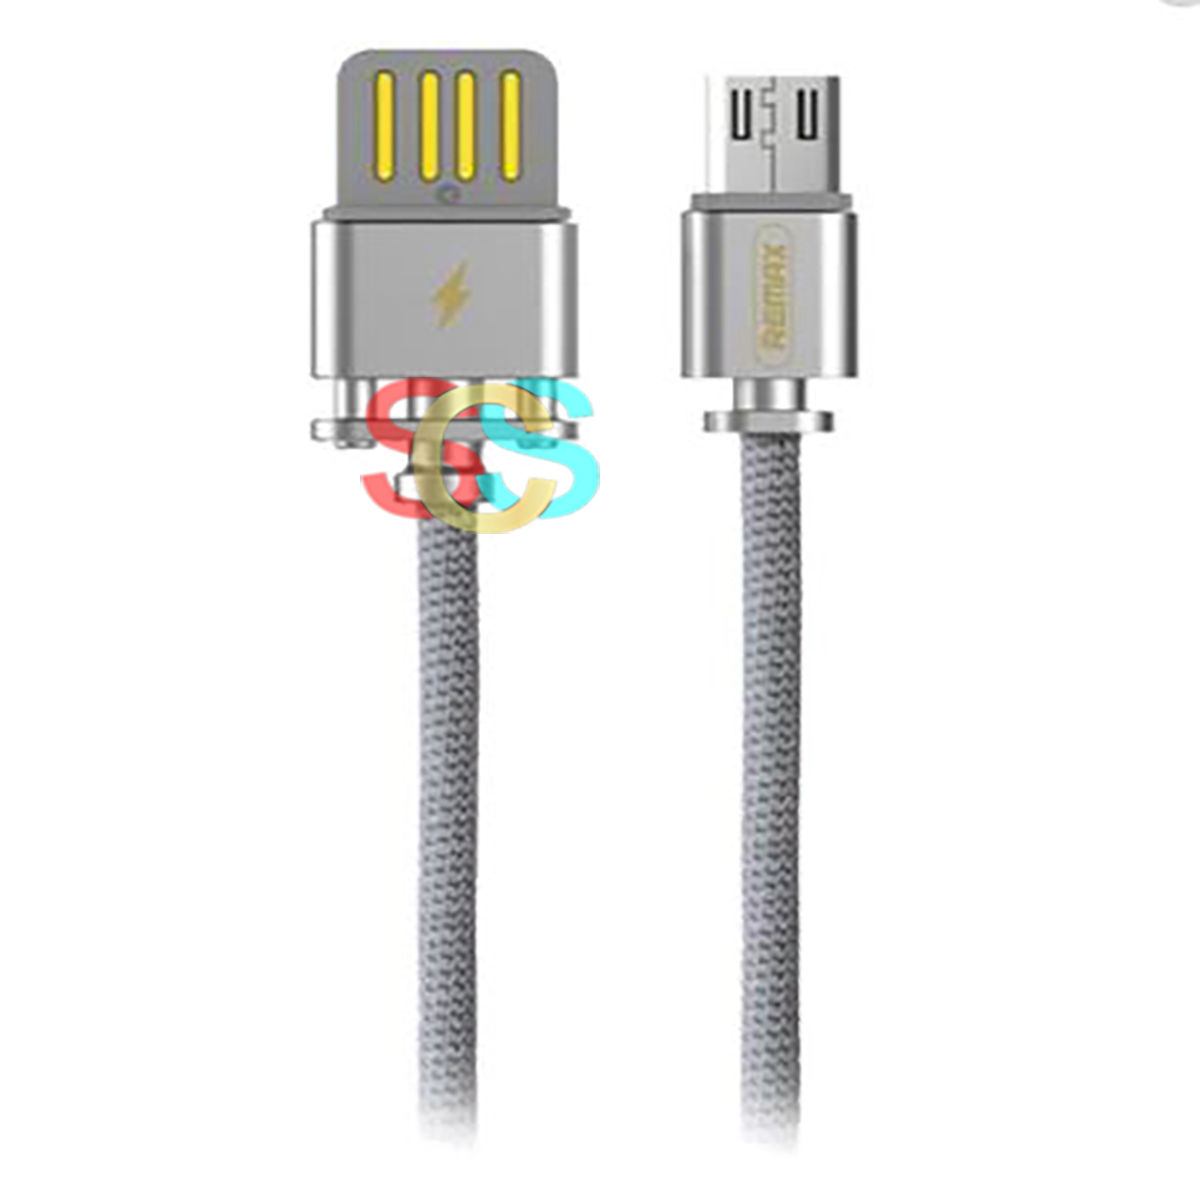 USB Male to Lightning, 1 Meter, Silver Data Cable